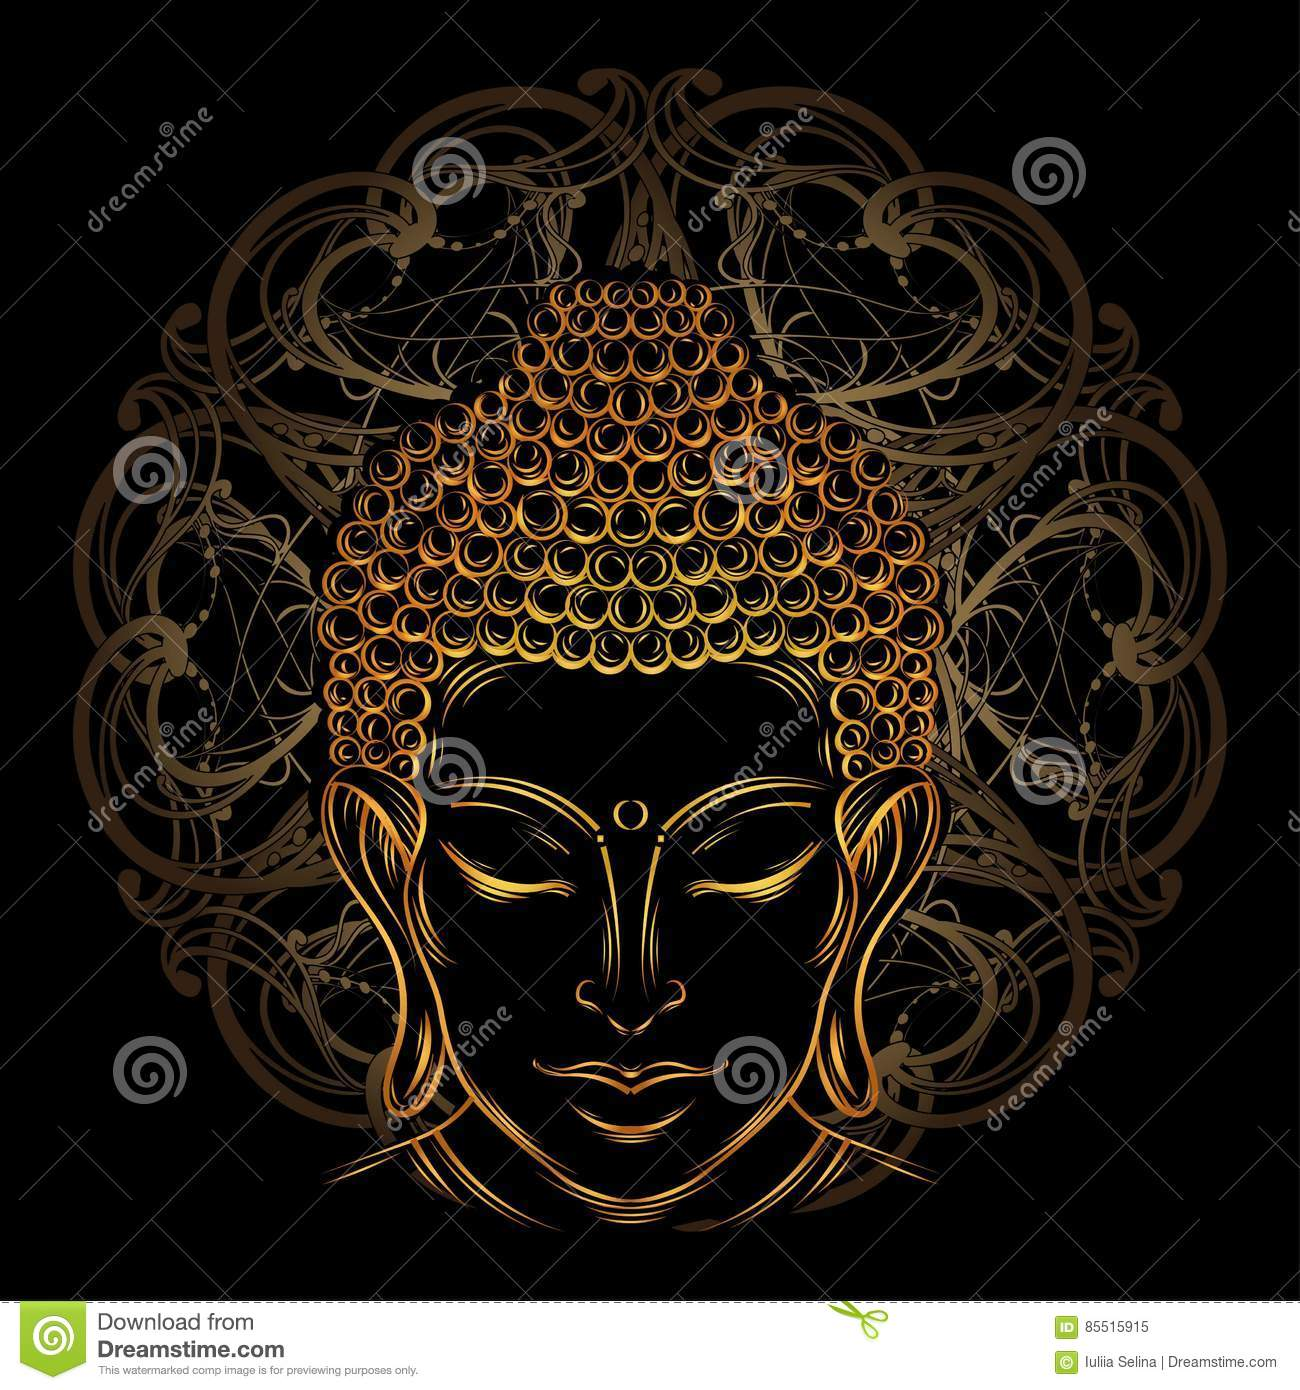 Buddha`s head tattoo stock illustration  Illustration of